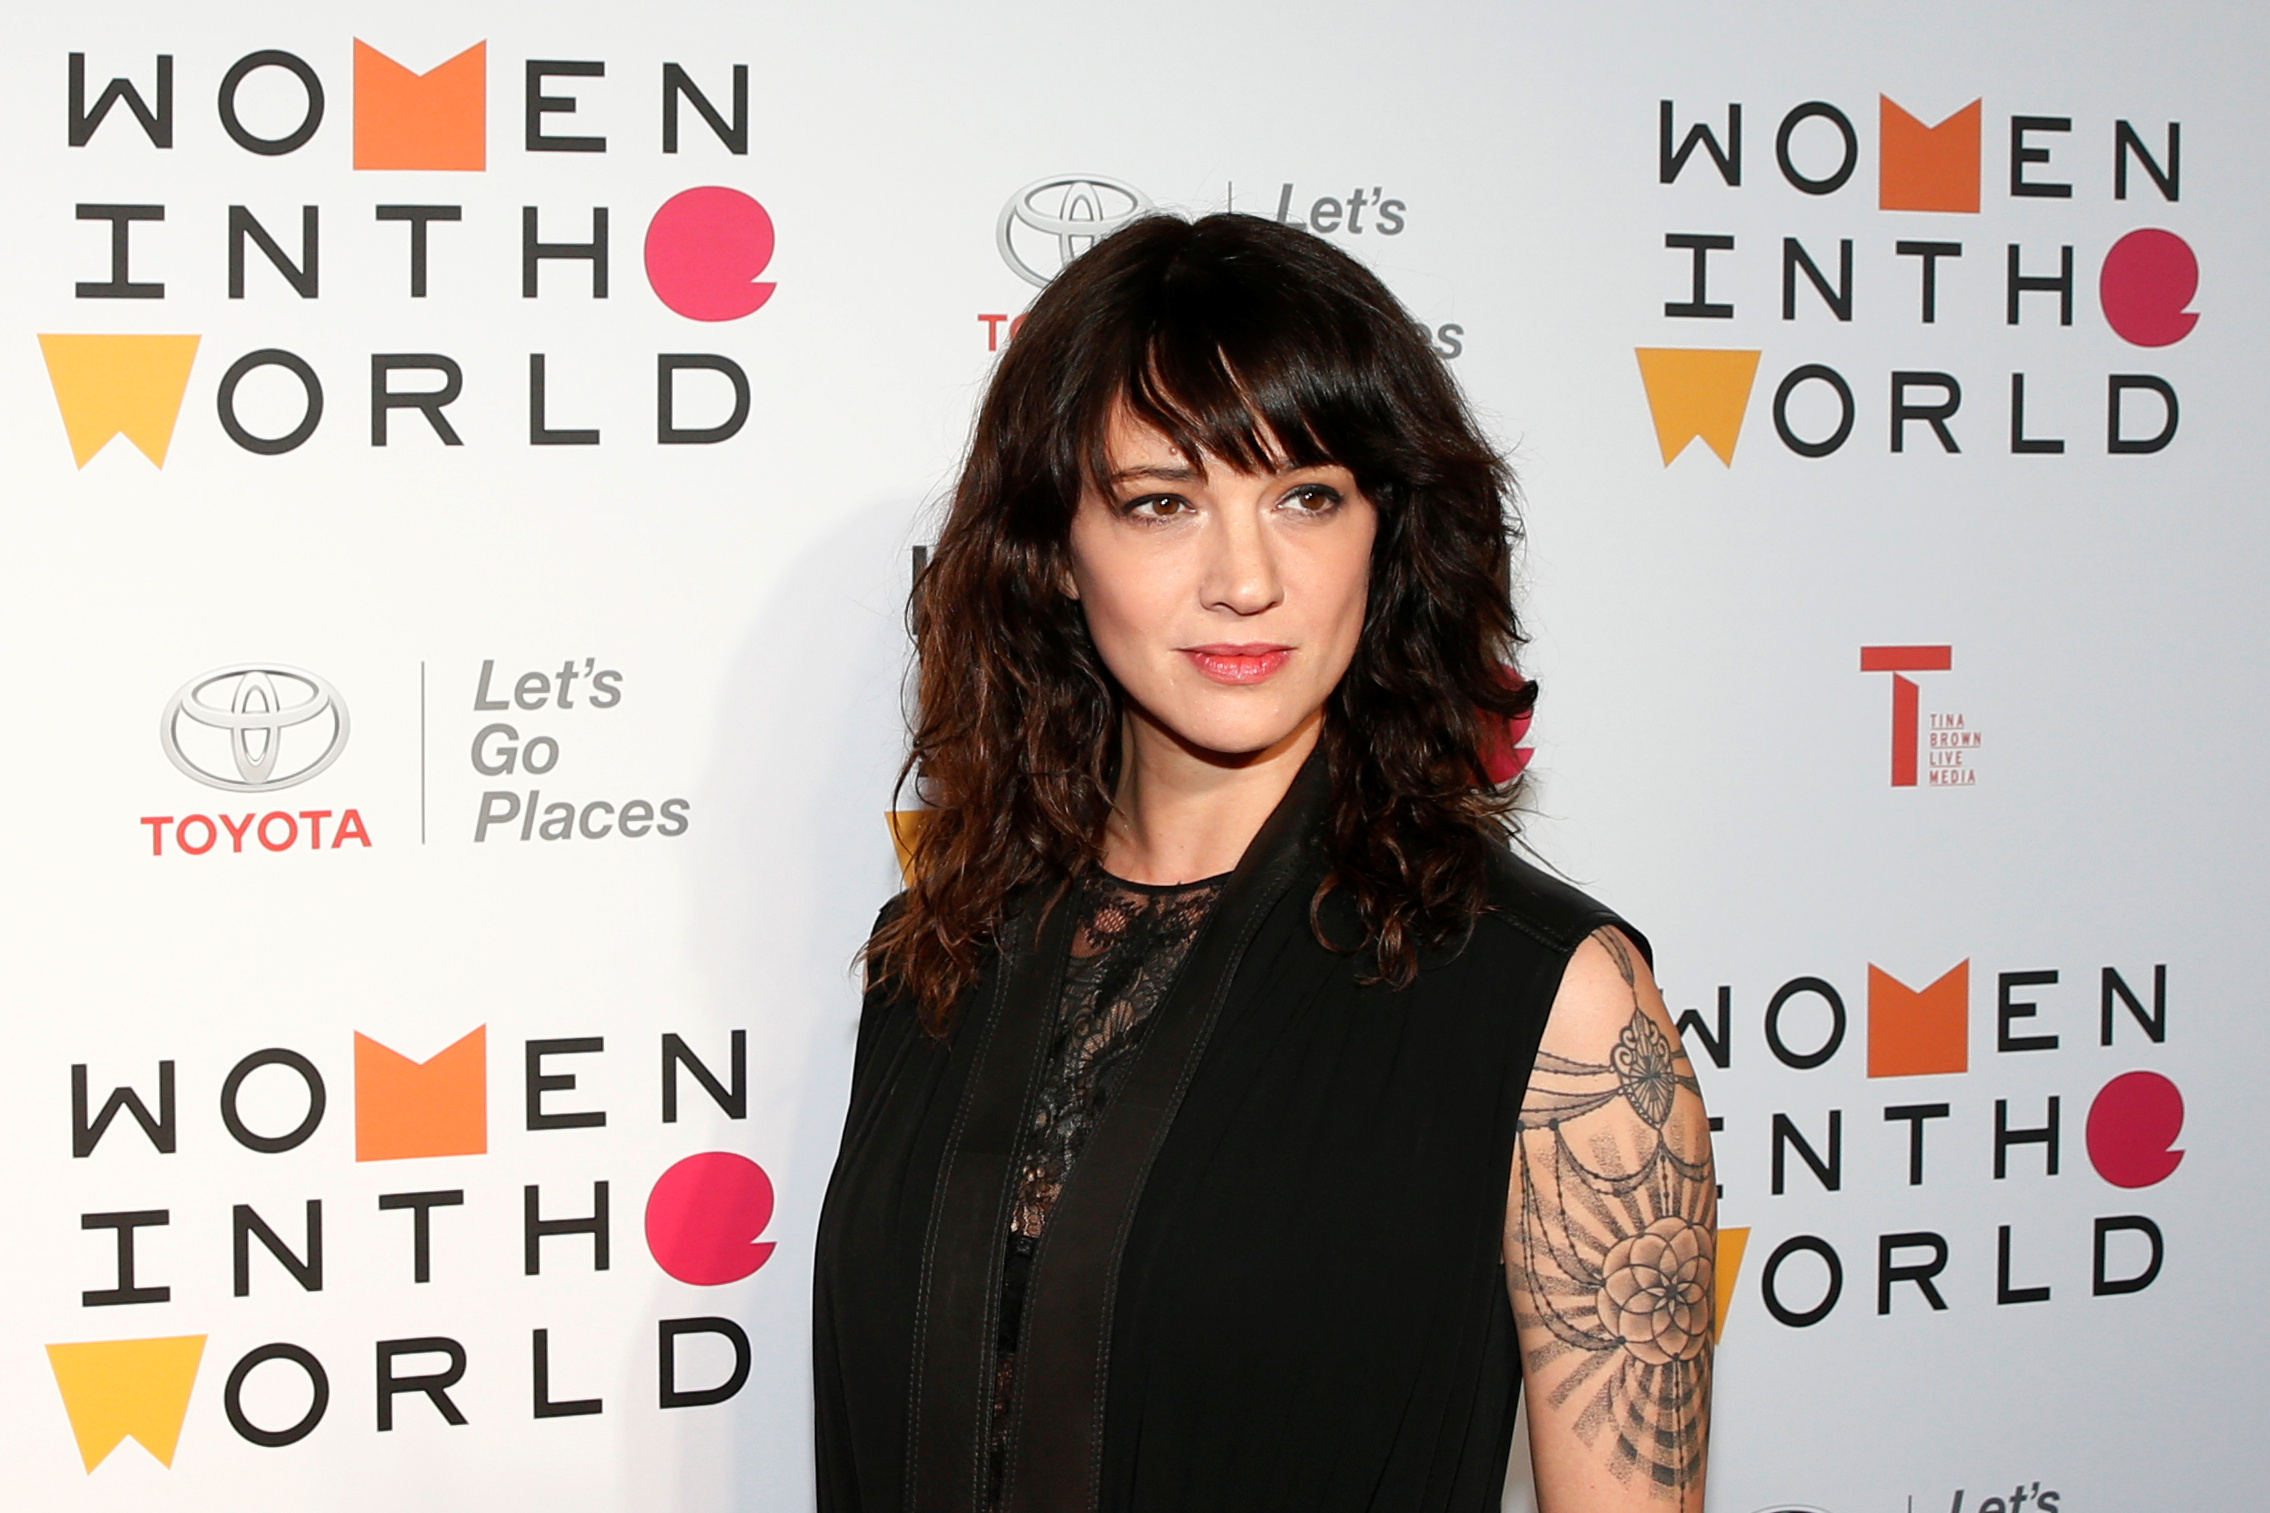 Asia Argento arrives for the Women In The World Summit in New York City